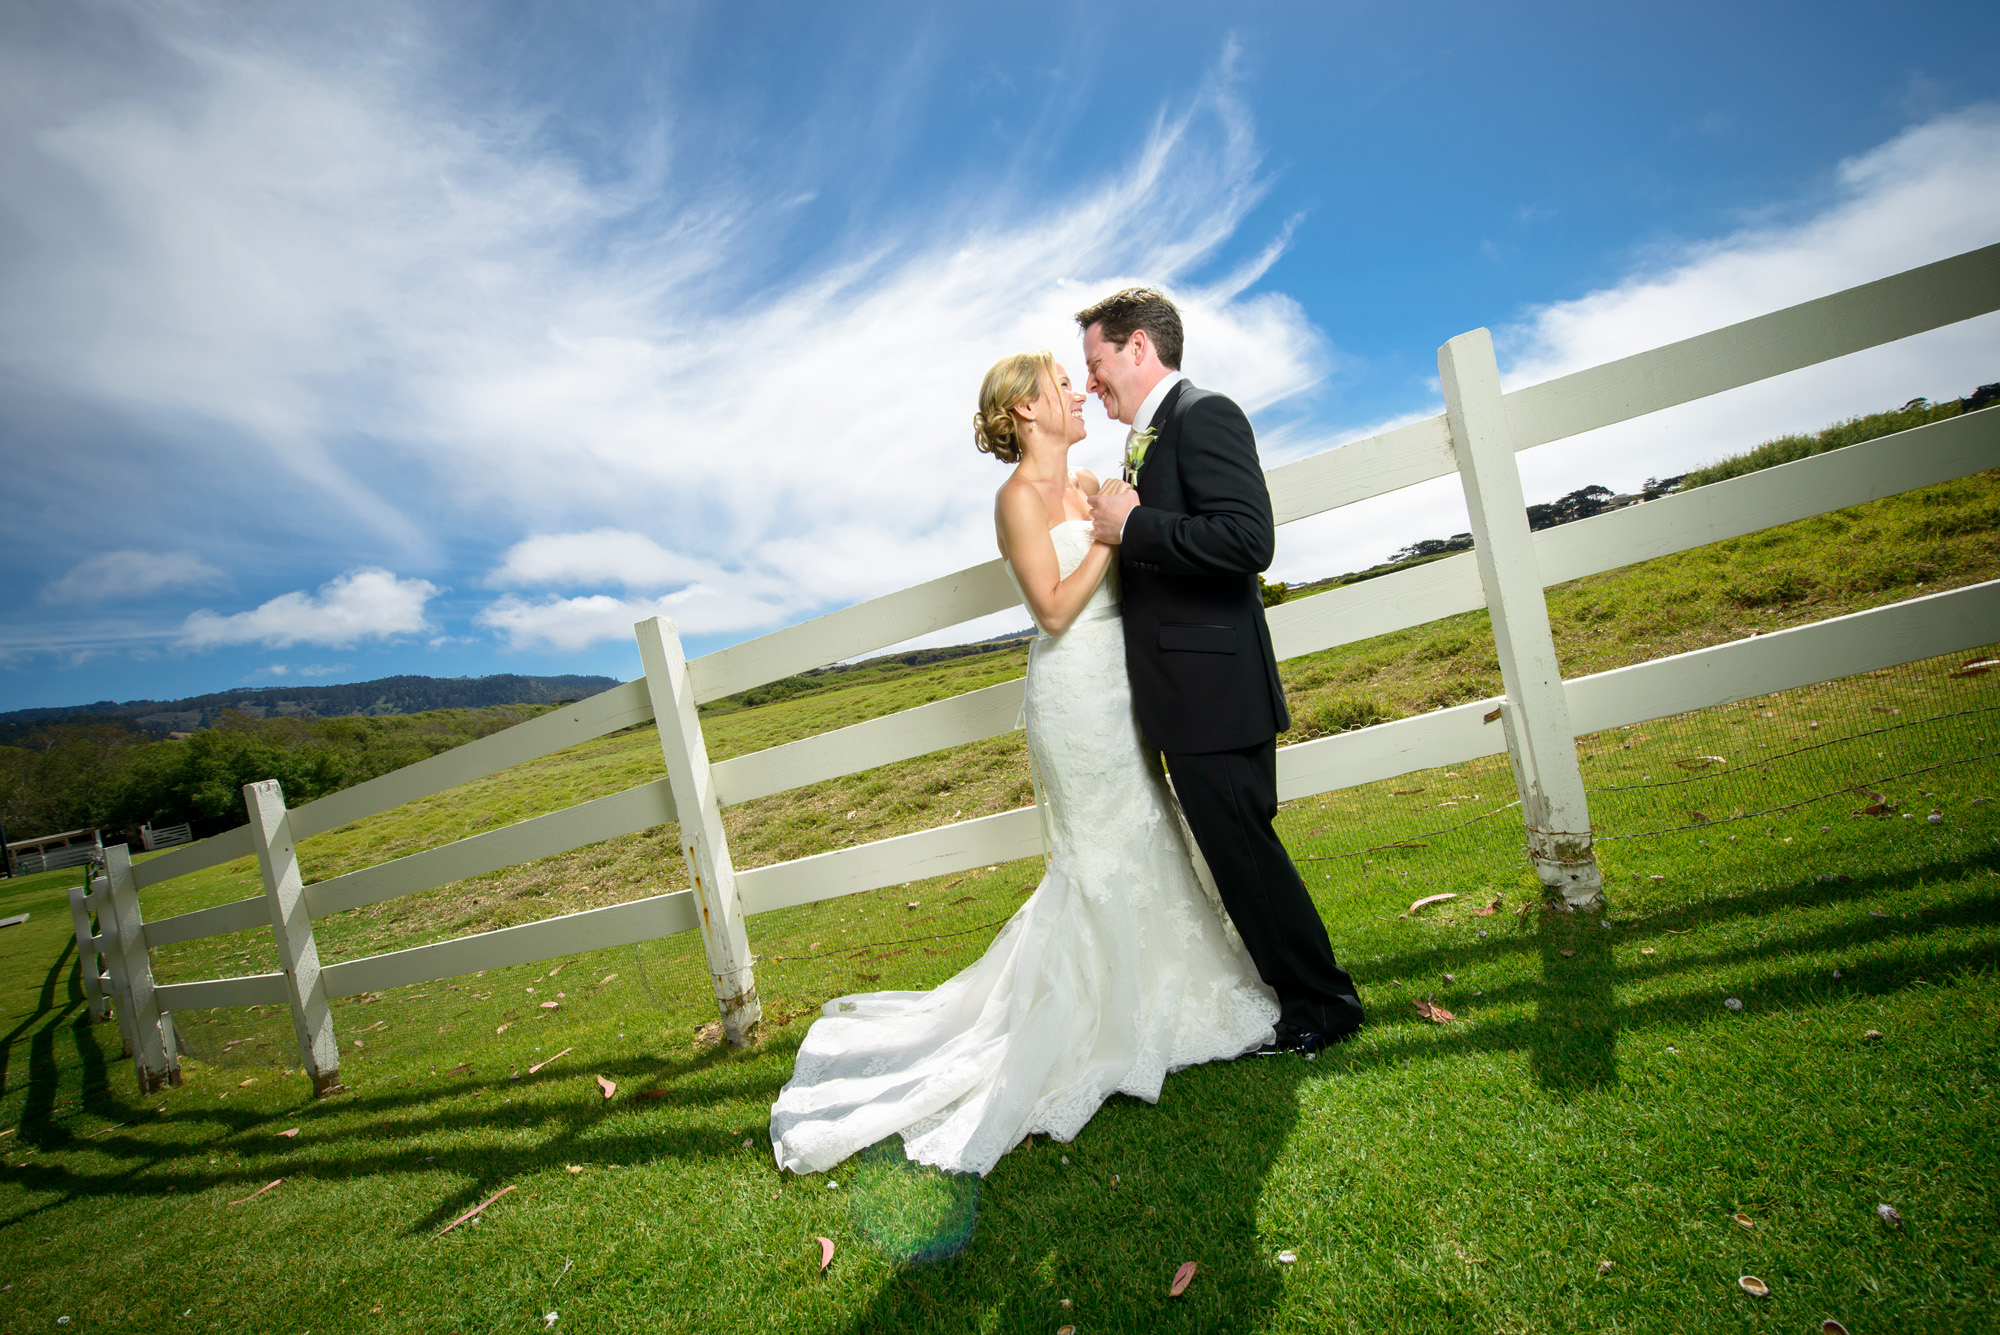 6195_d800a_Sarah_and_Brian_Mission_Ranch_Carmel_Wedding_Photography.jpg